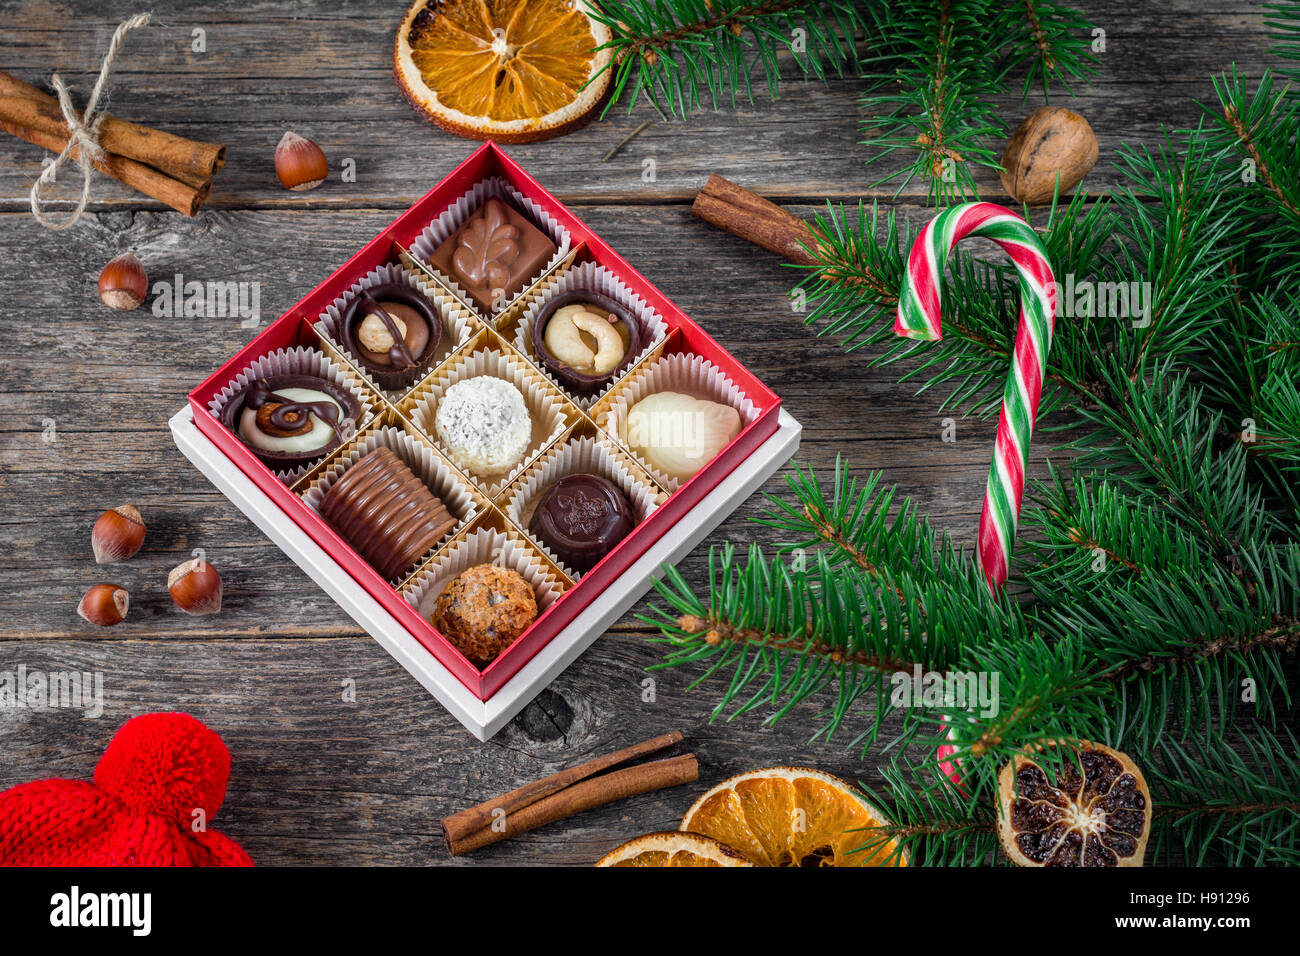 Christmas Gifts Christmas Decoration Box Of Chocolate Sweets Candy Stock Photo Alamy